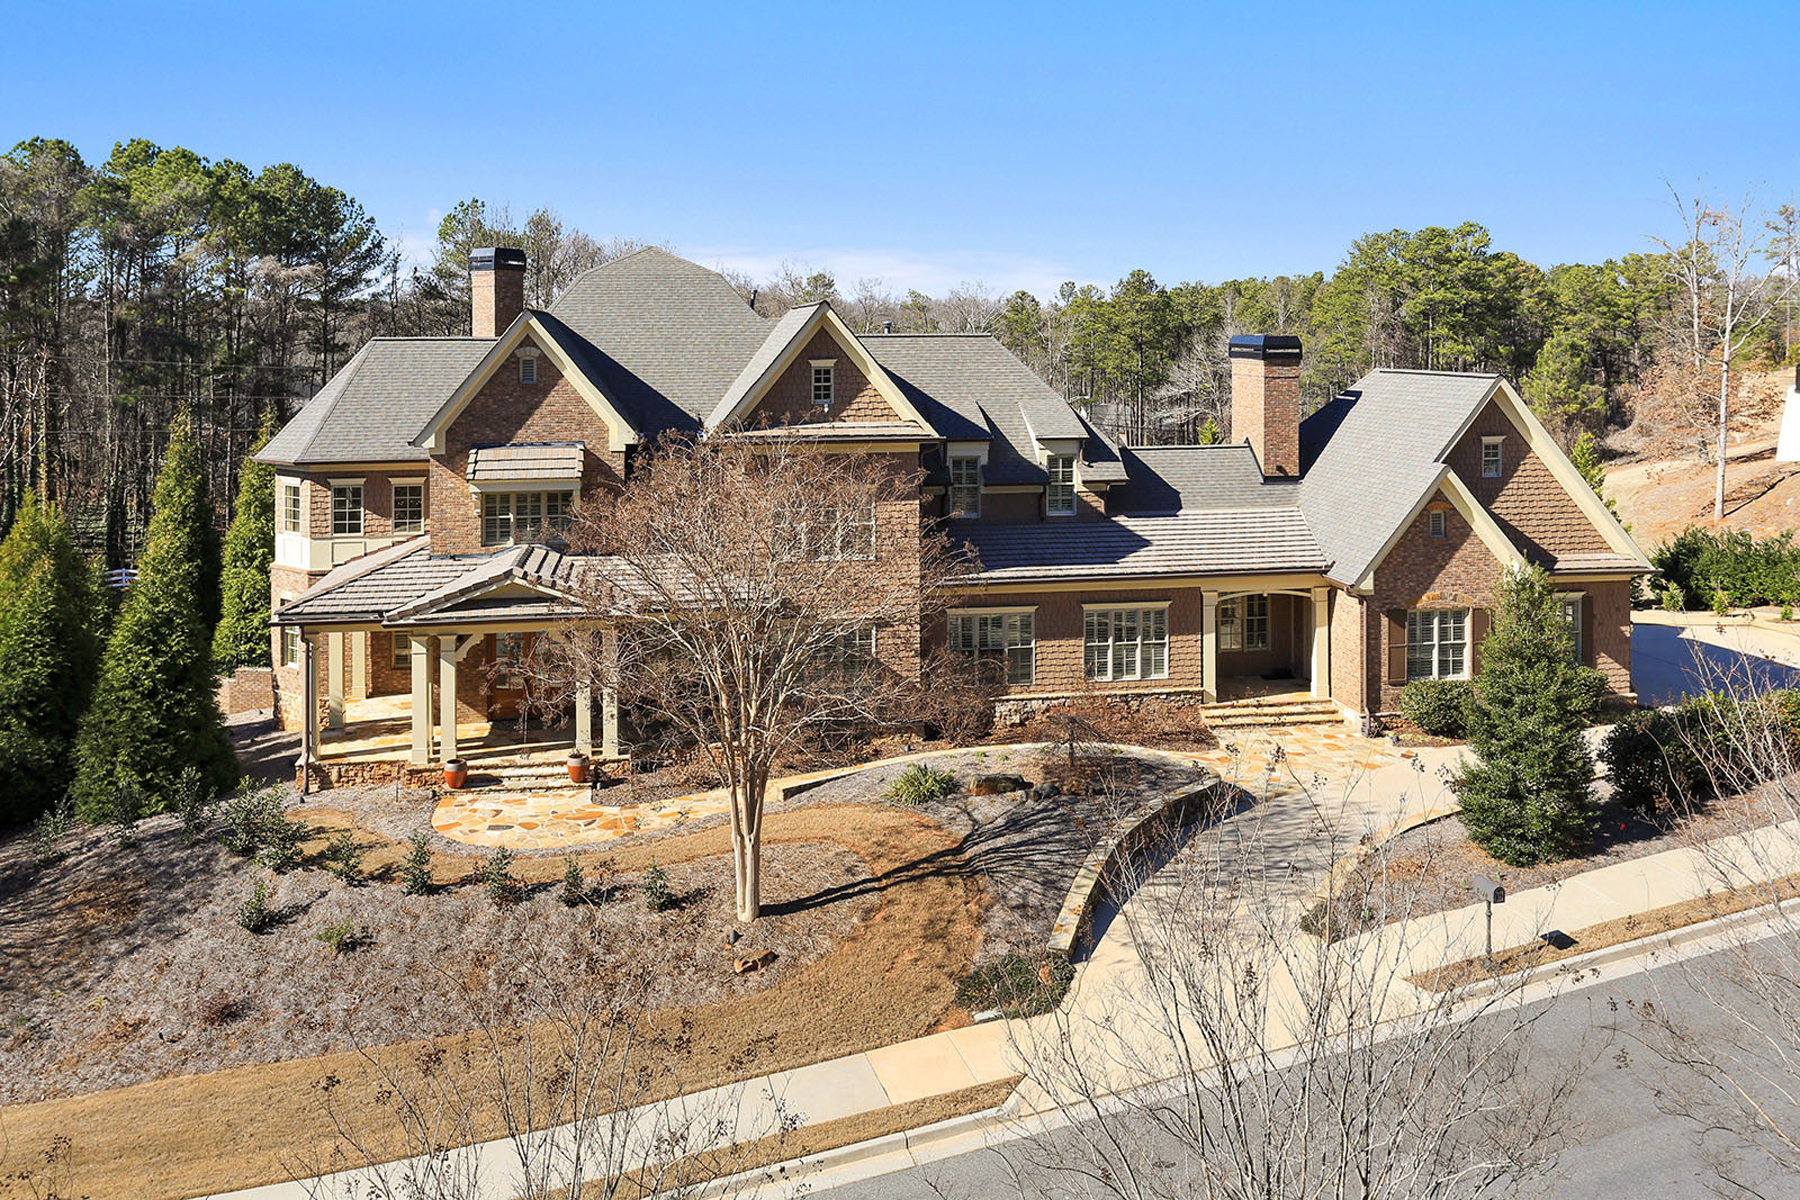 Single Family Home for Active at Stunning Home On Resort-Like Setting 5128 Pindos Pass Powder Springs, Georgia 30127 United States